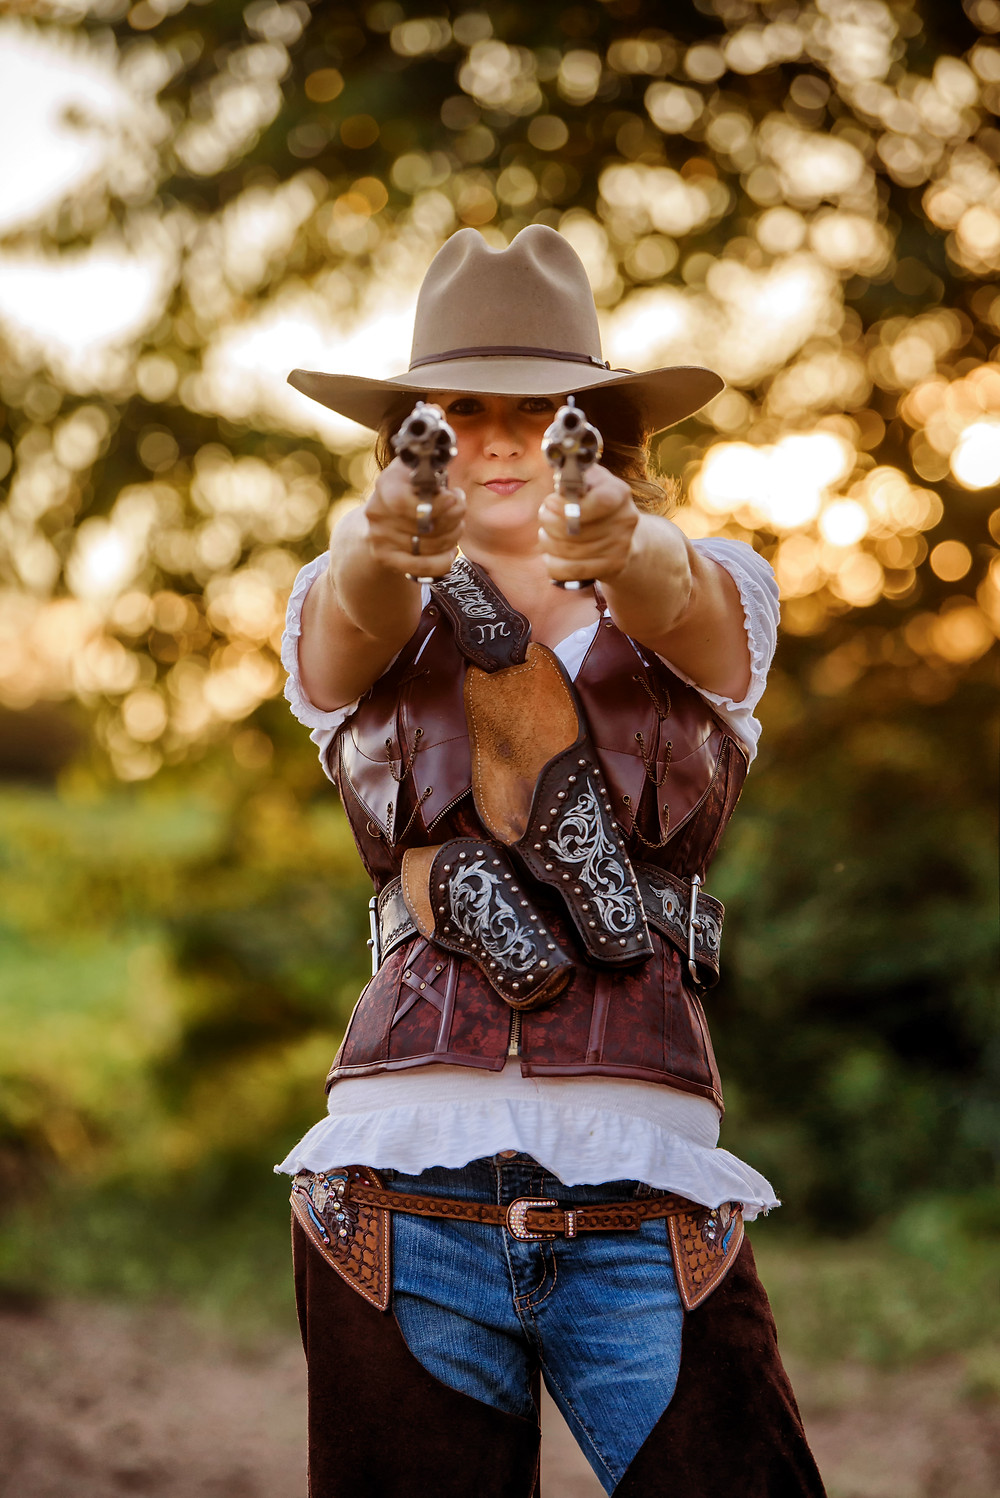 Cowgirl pointing two guns at the camera.